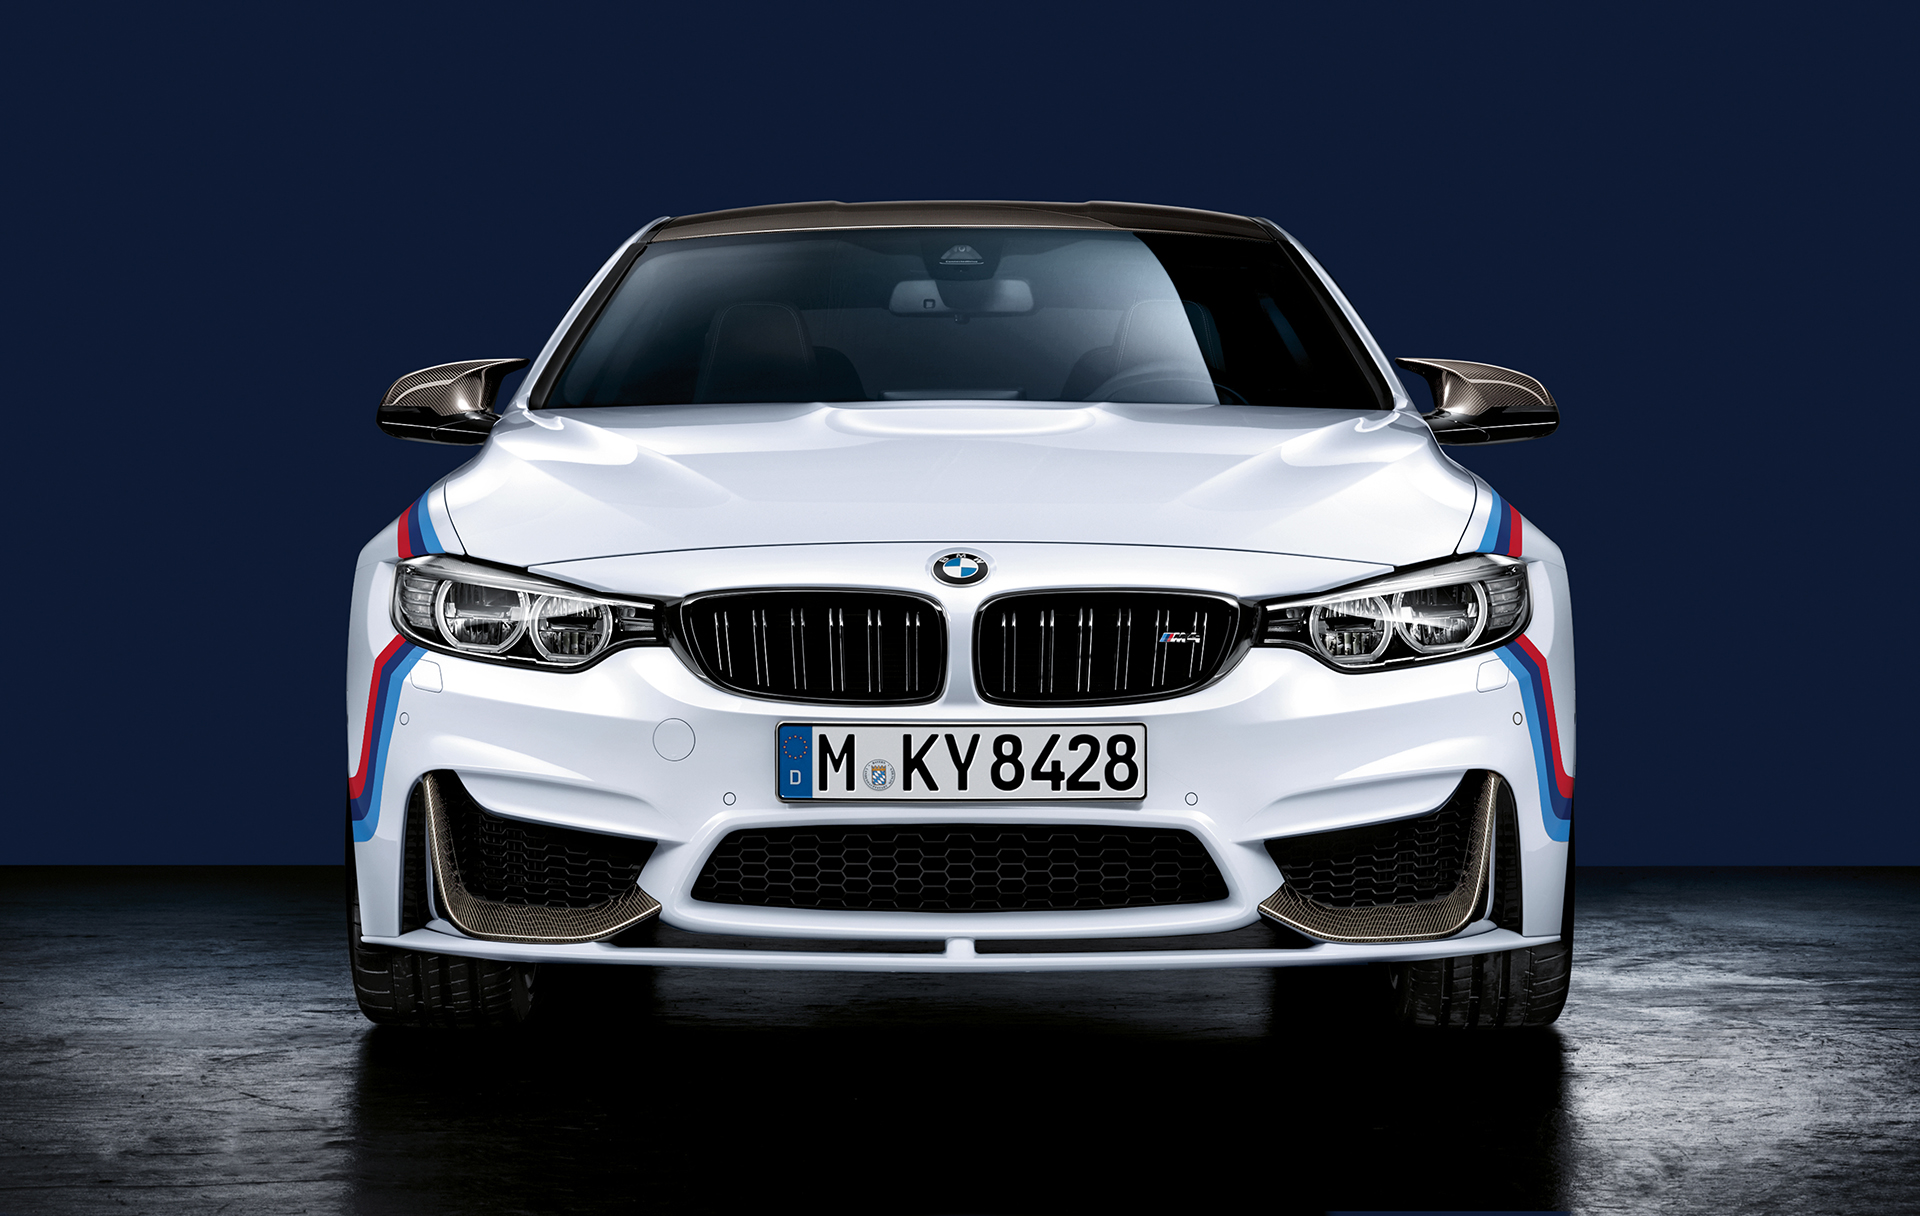 2017 Bmw 340i Xdrive >> BMW gives us an update on M Performance Parts